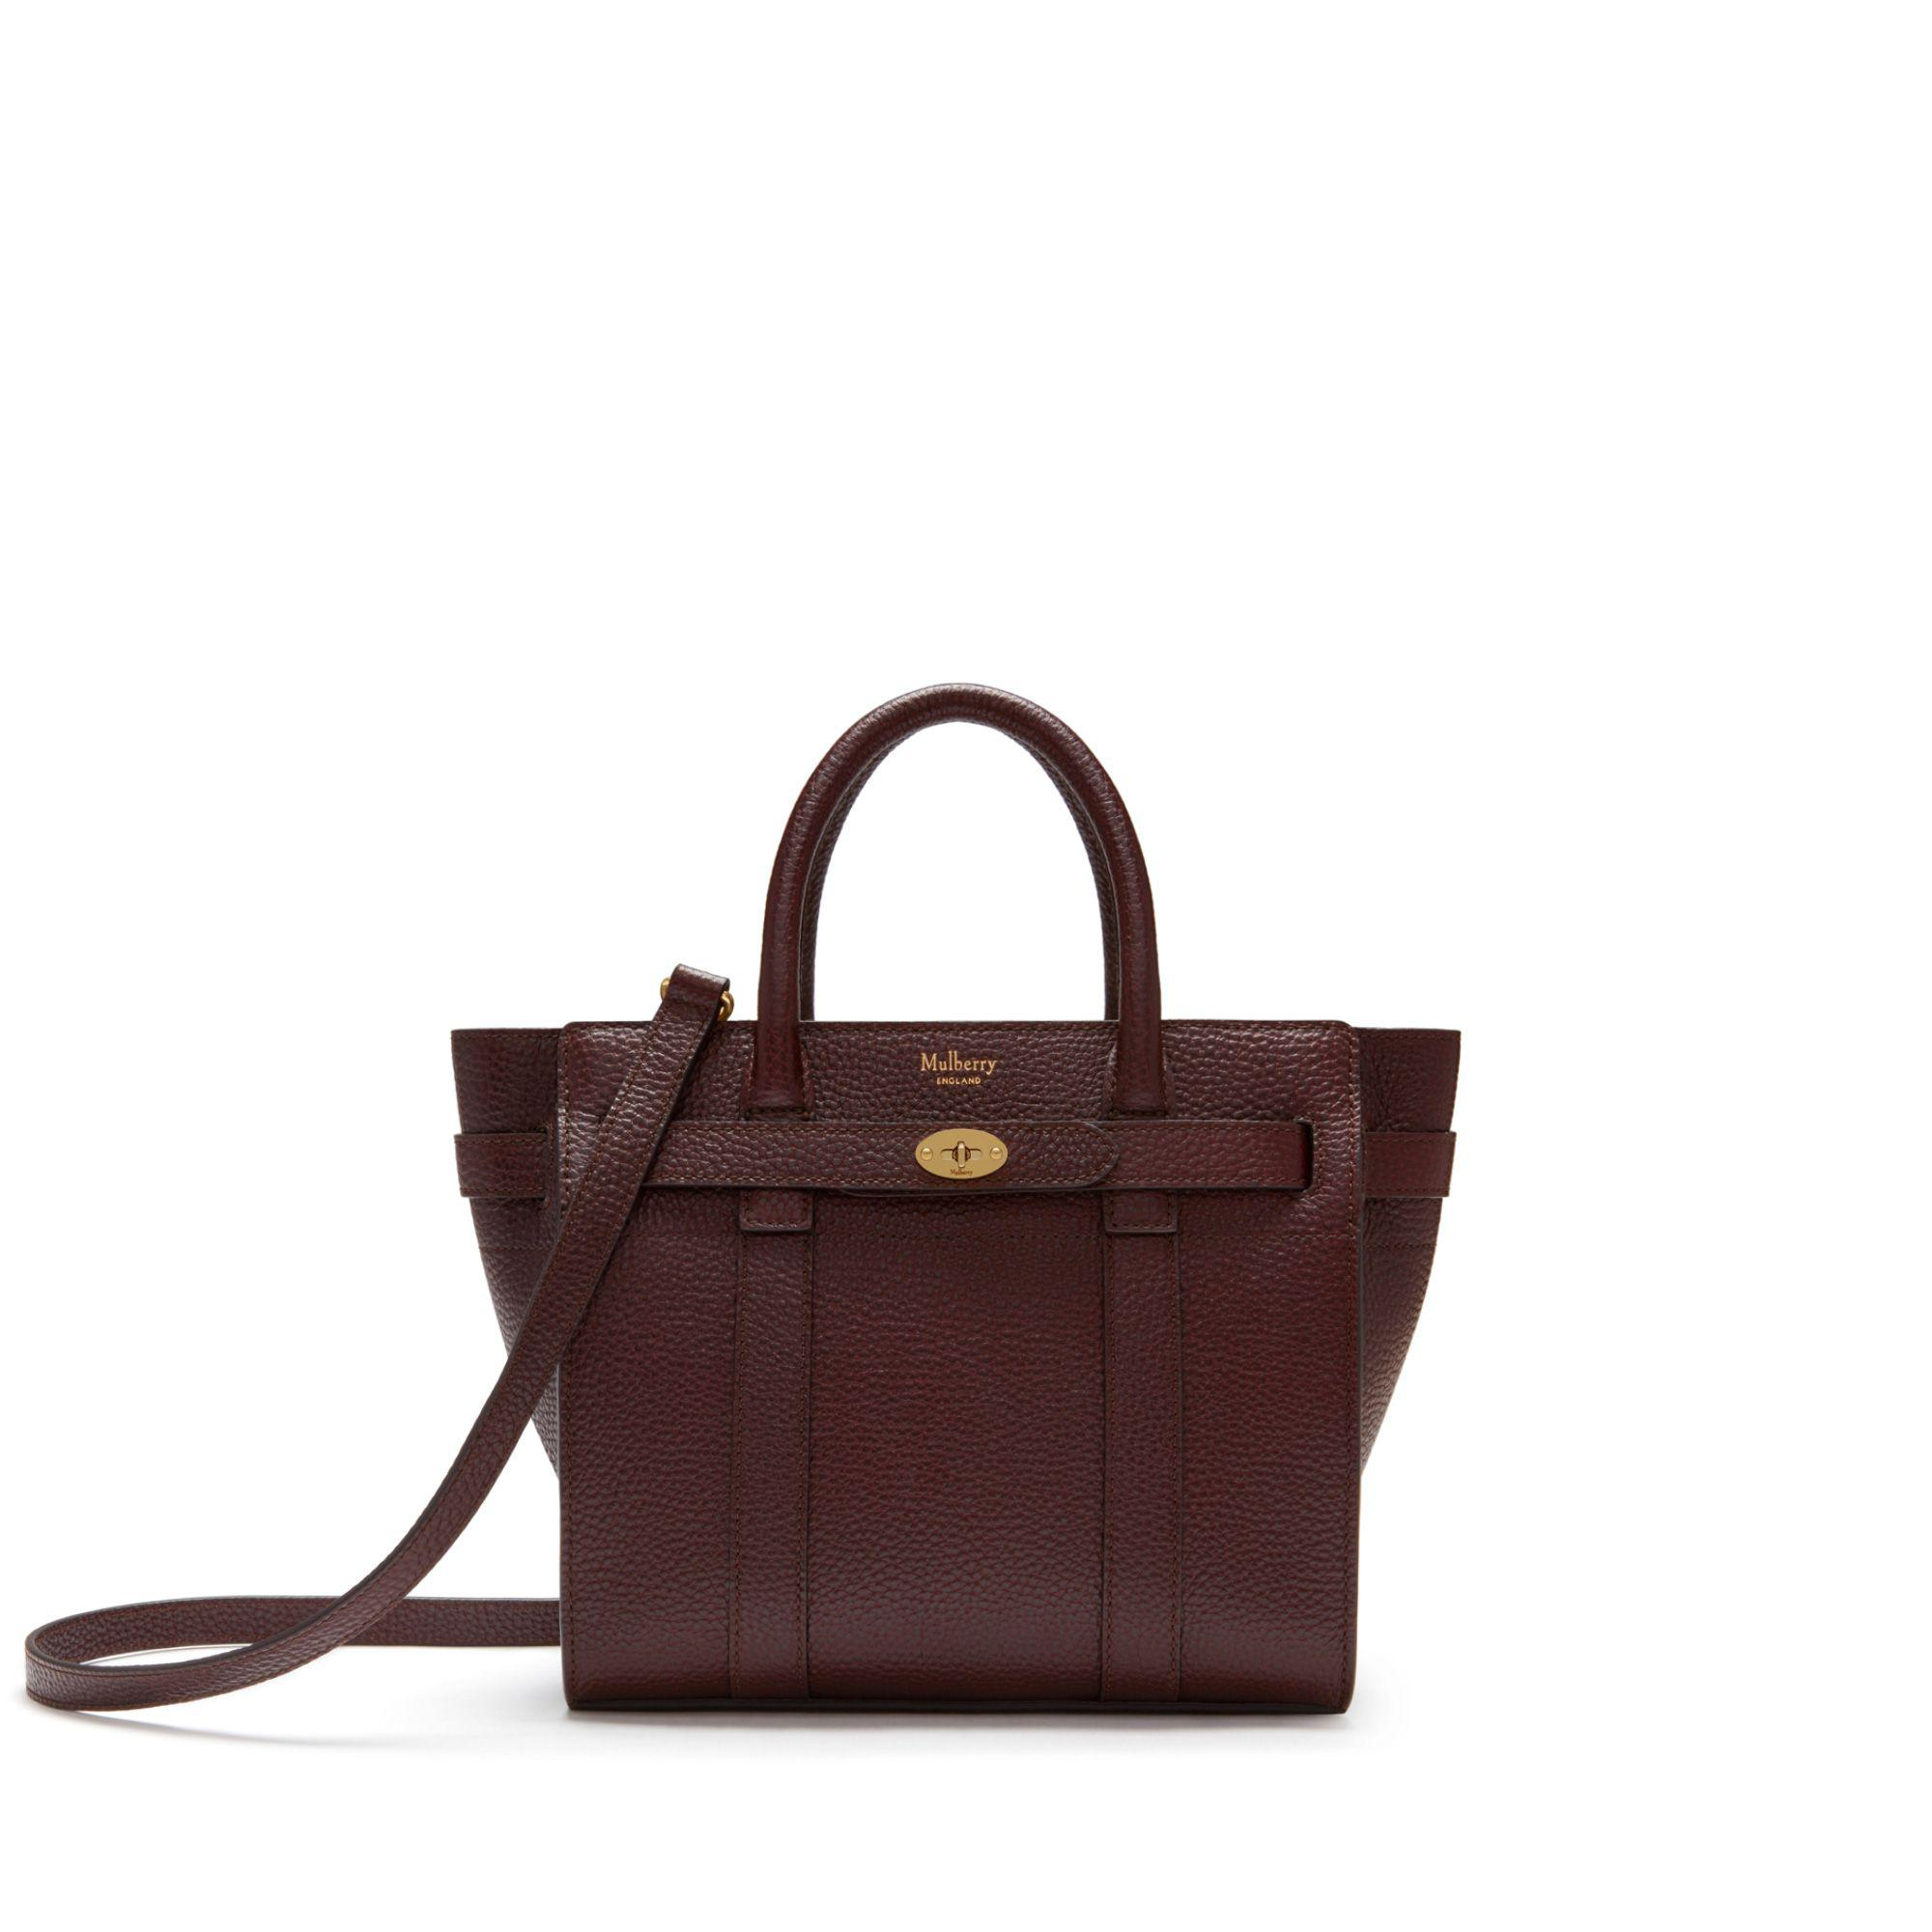 Mulberry. Women s Small Zipped Bayswater In Oxblood Natural Grain Leather 4ea643d902334